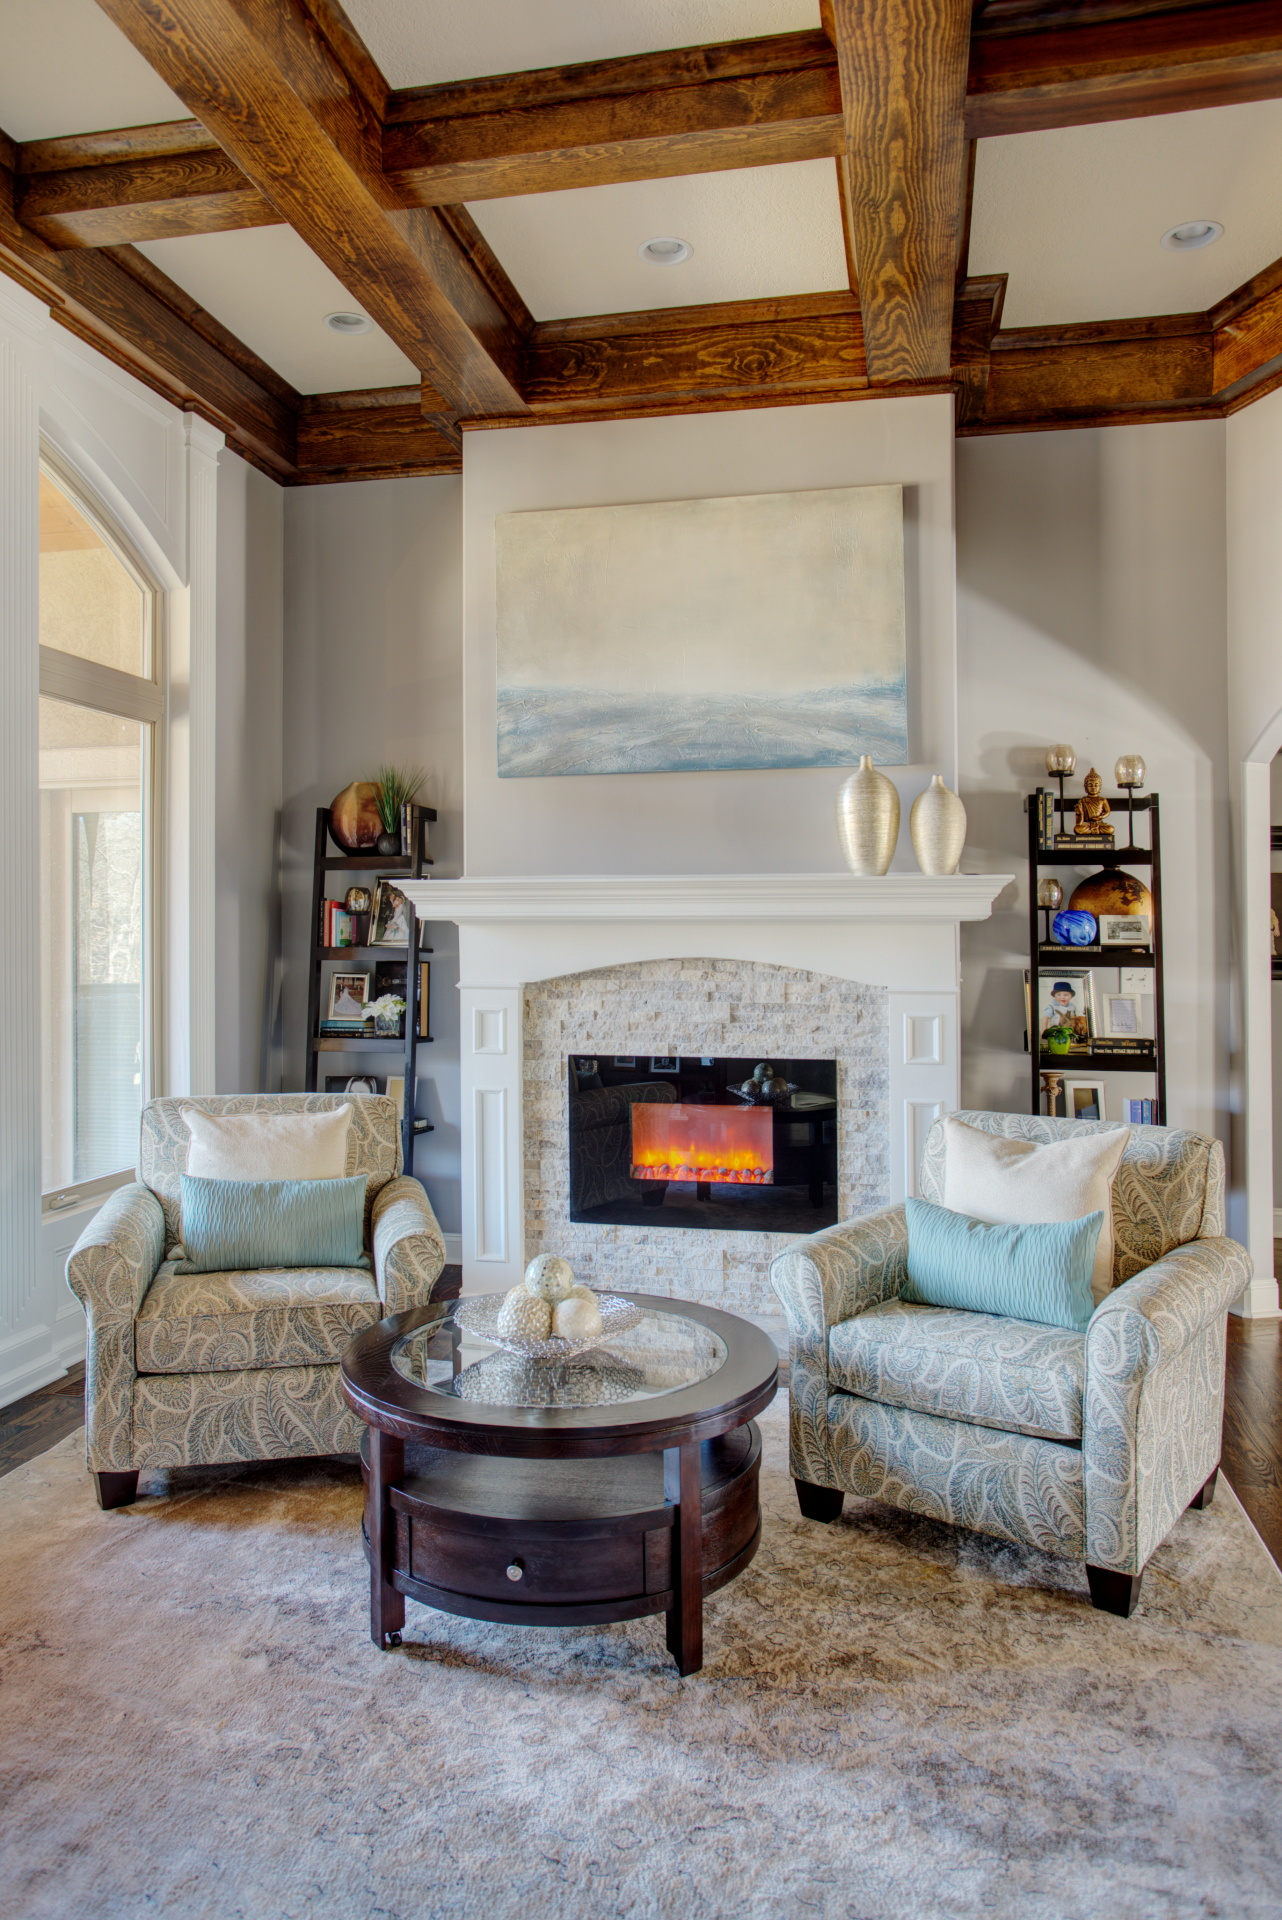 A remodeled sitting room idea,picture from houzz.com.